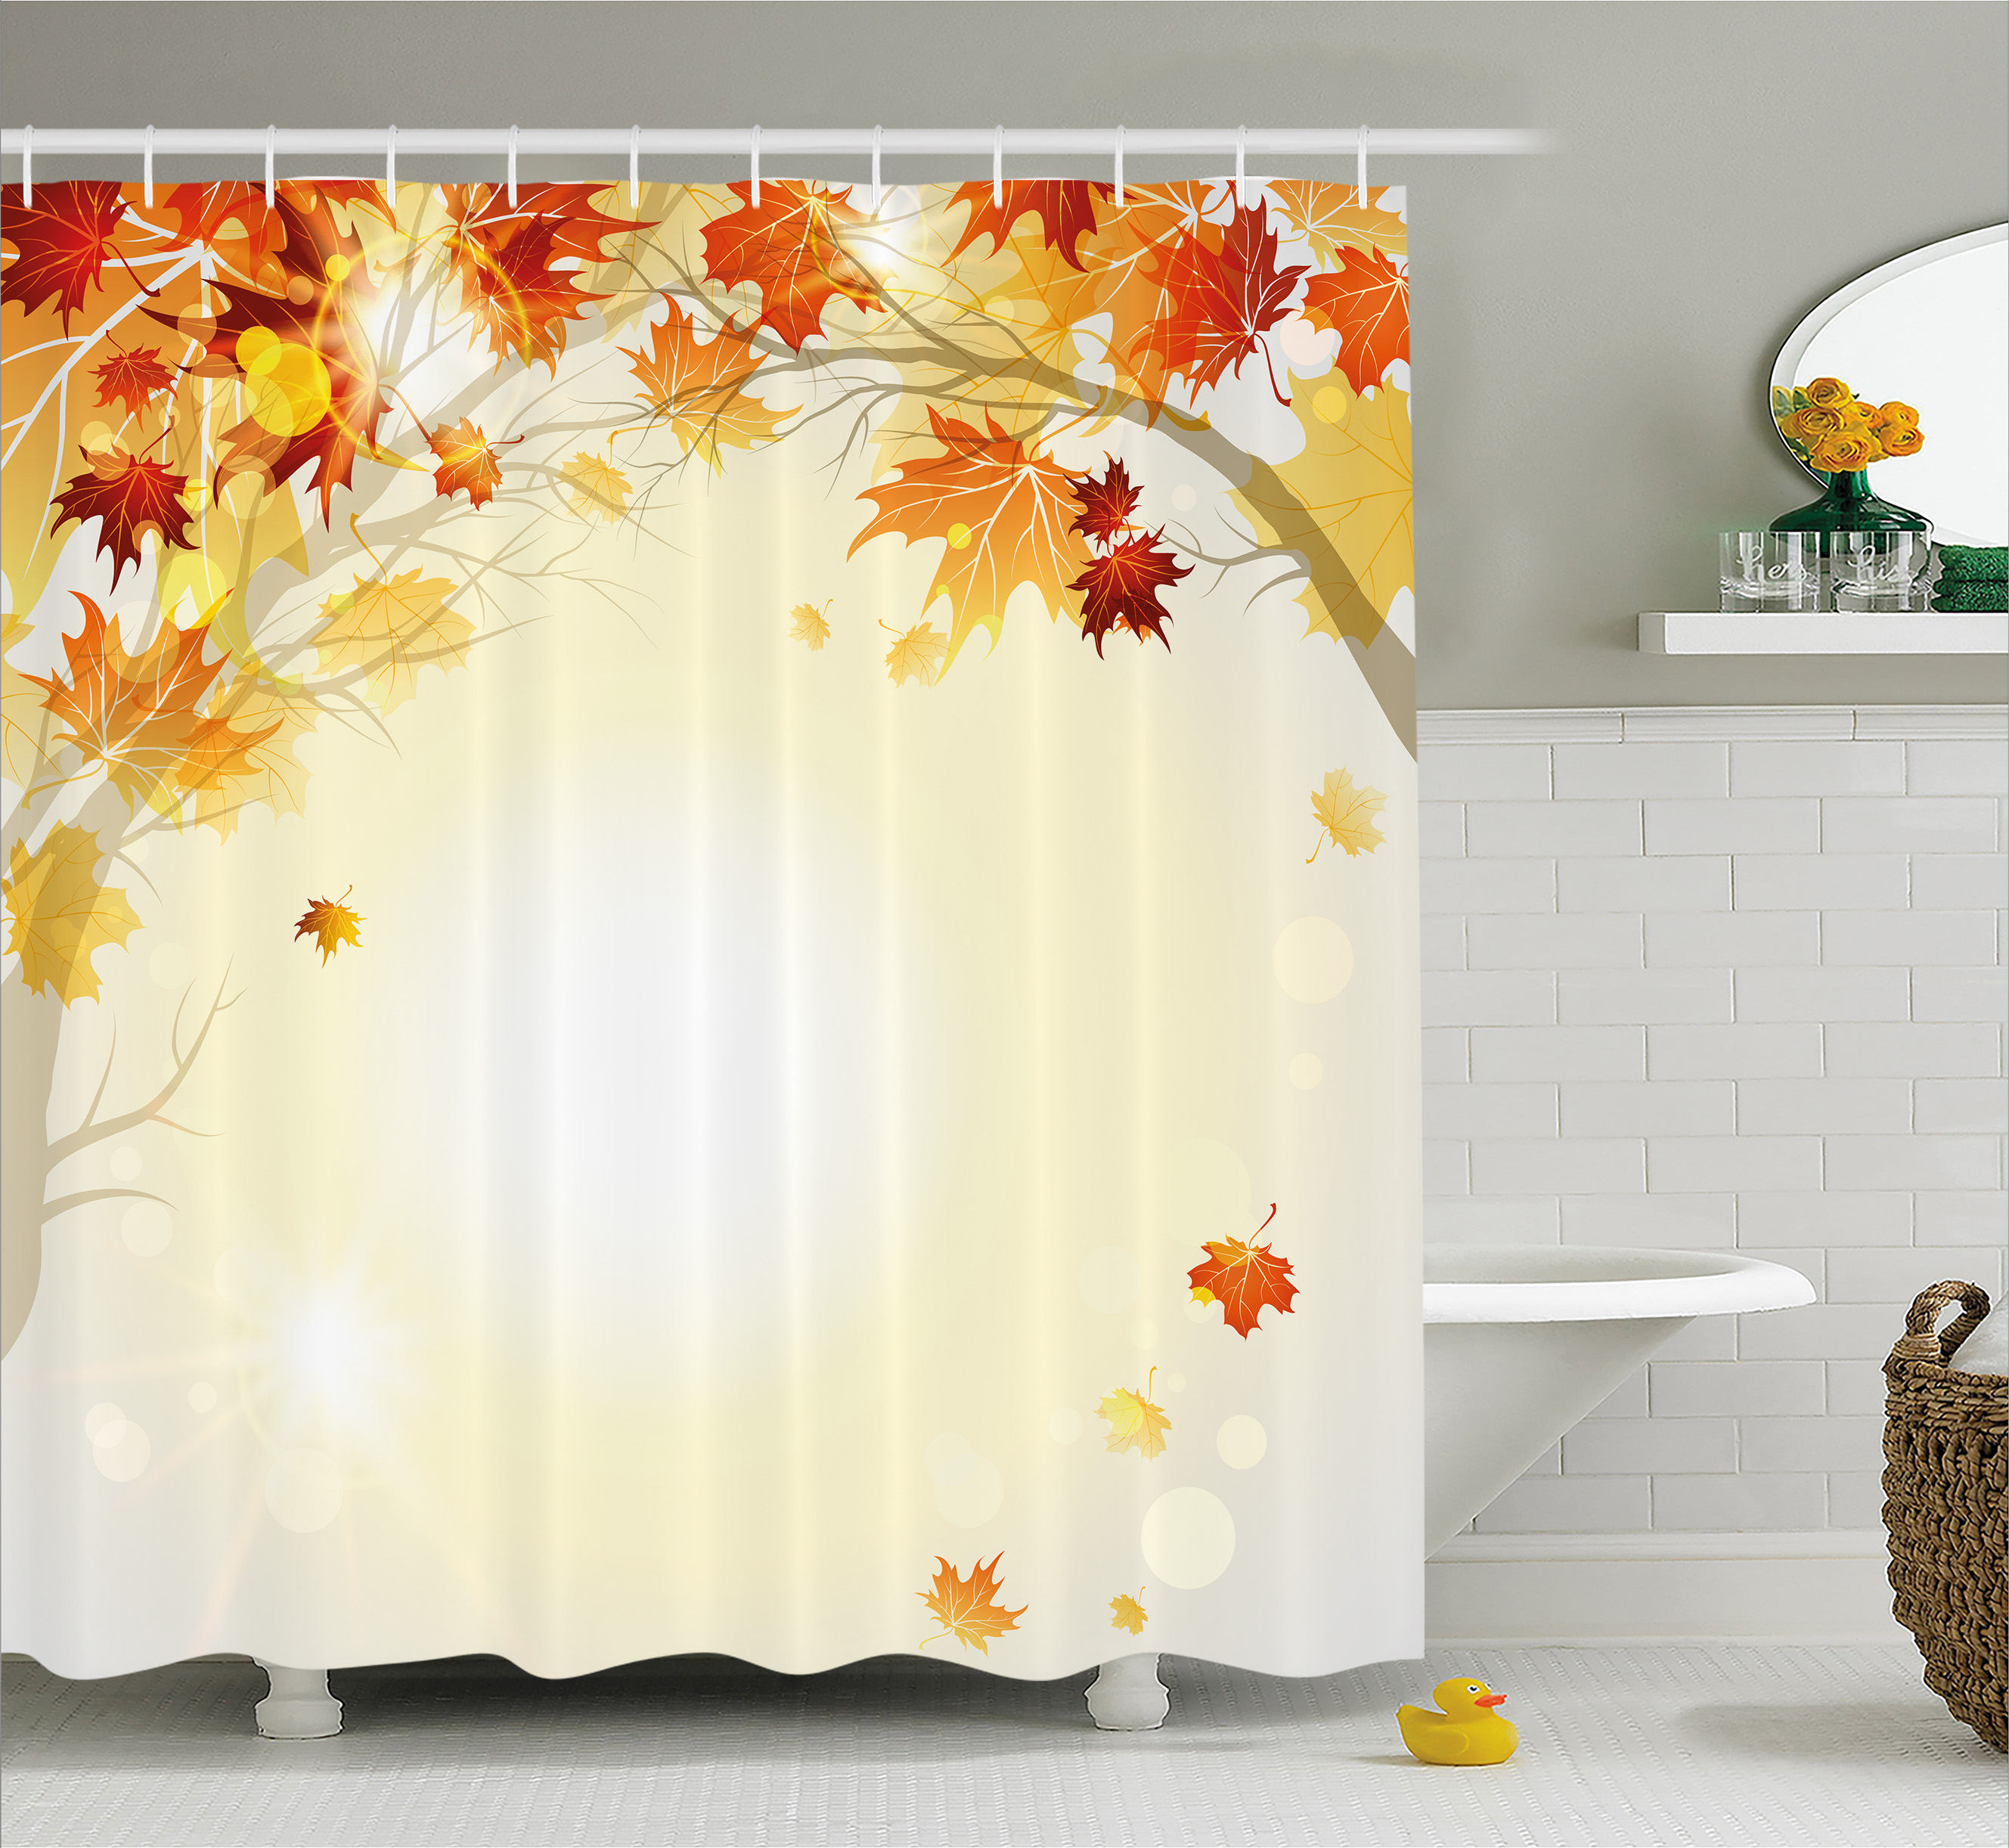 Fall Decorations Shower Curtain, Soft Image Of Faded Shedding Fall Leaves  From Tree Motion In